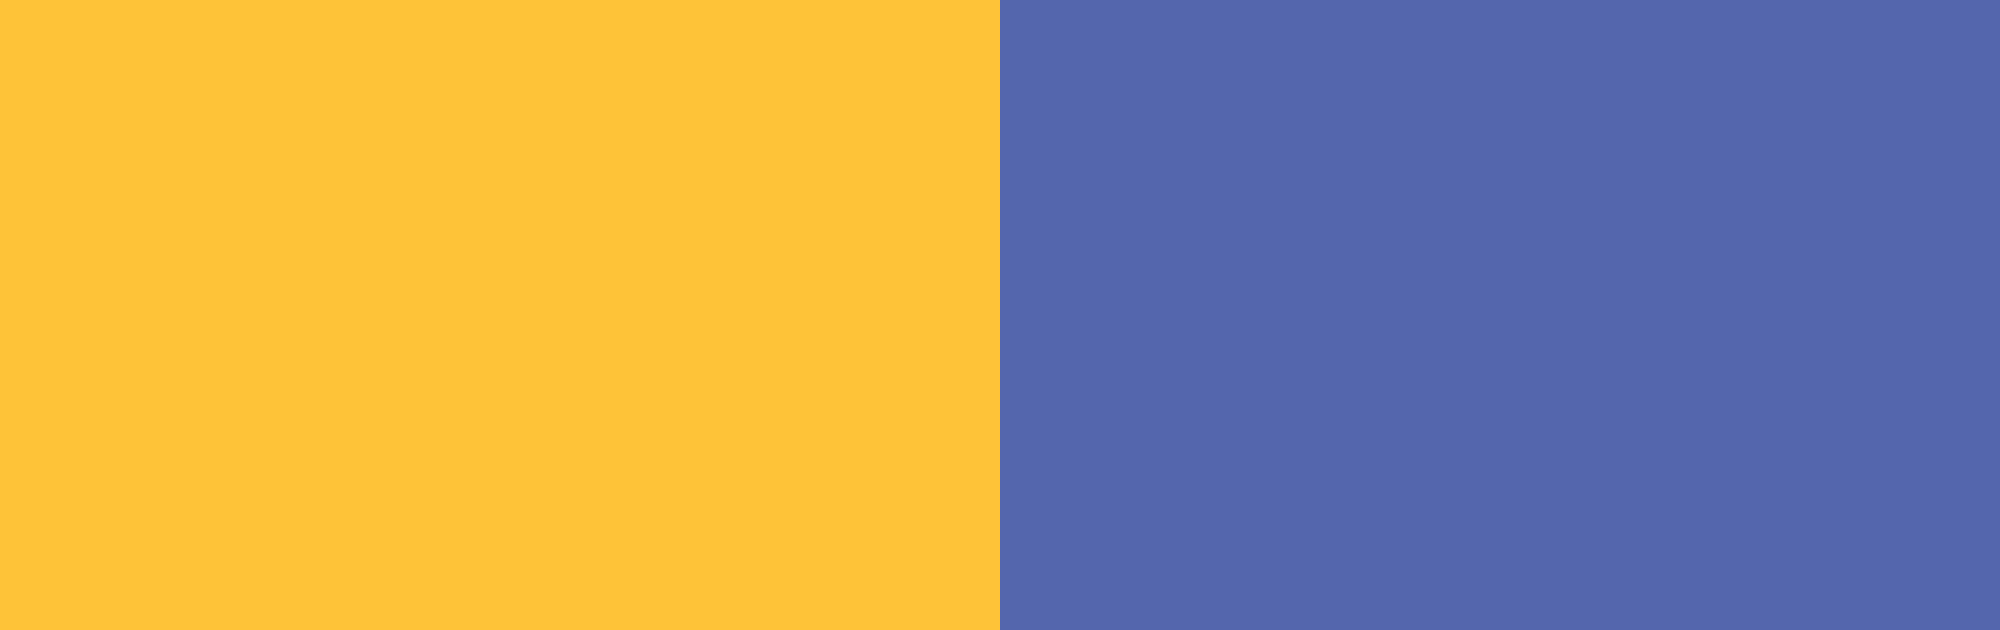 Two contrasting colors of different color families.